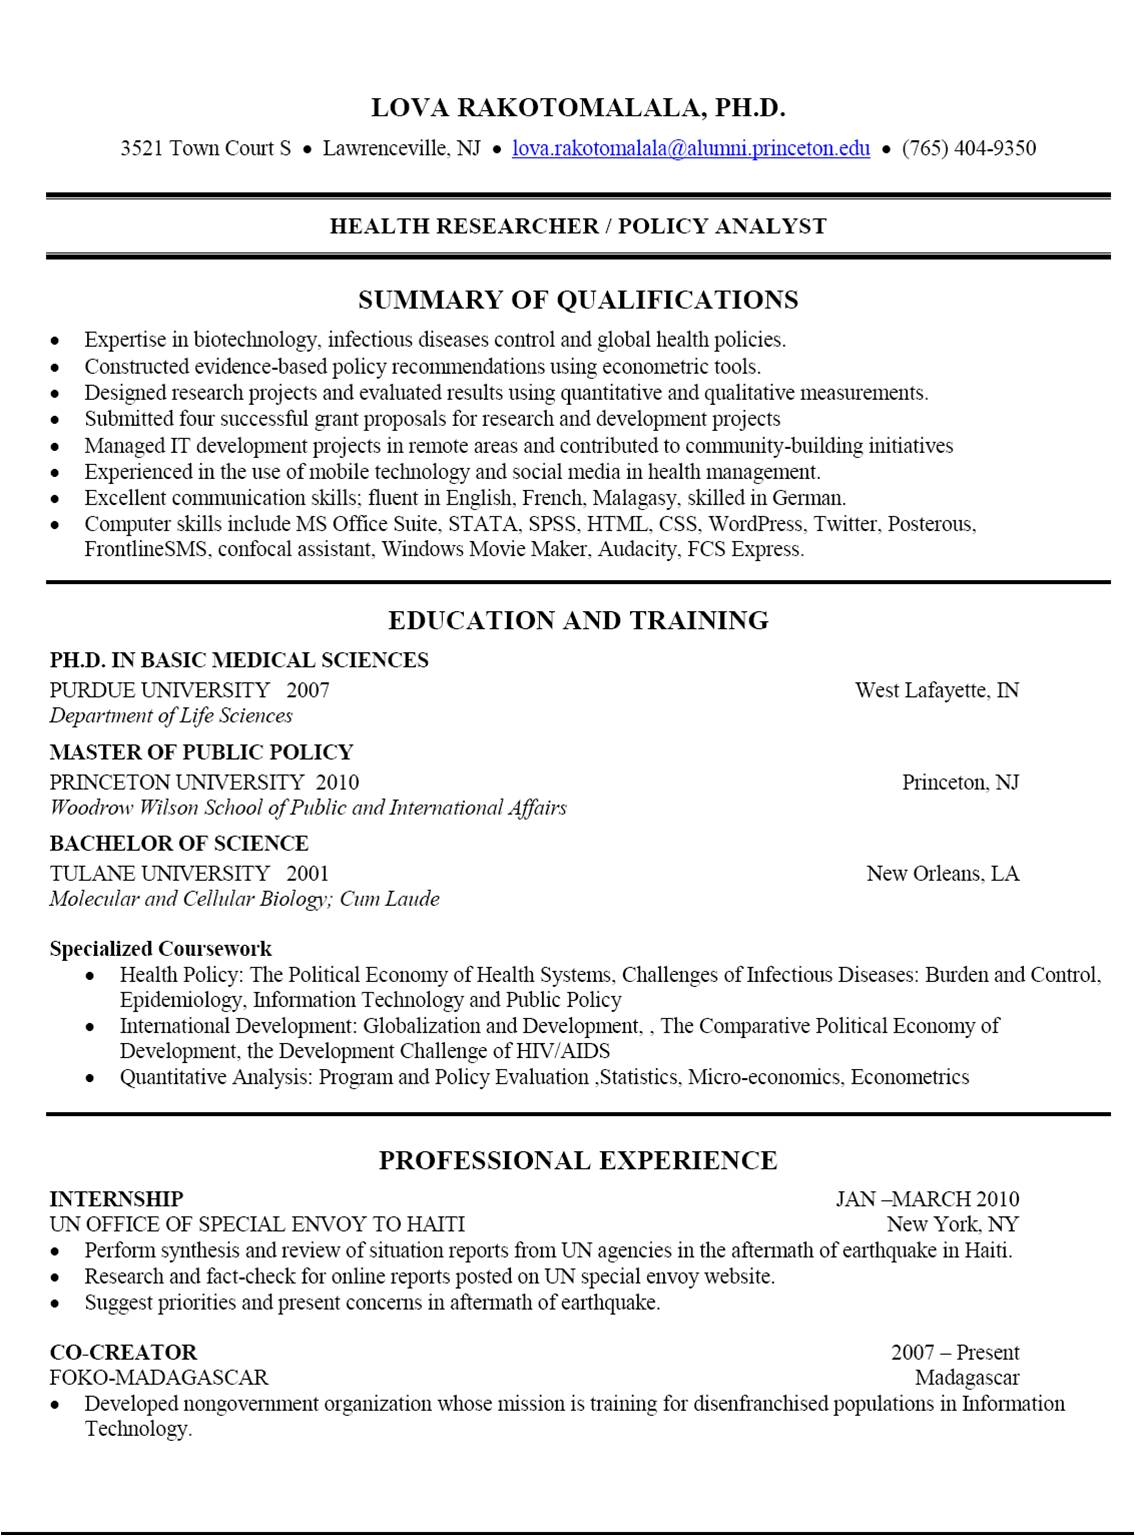 resume cv profile